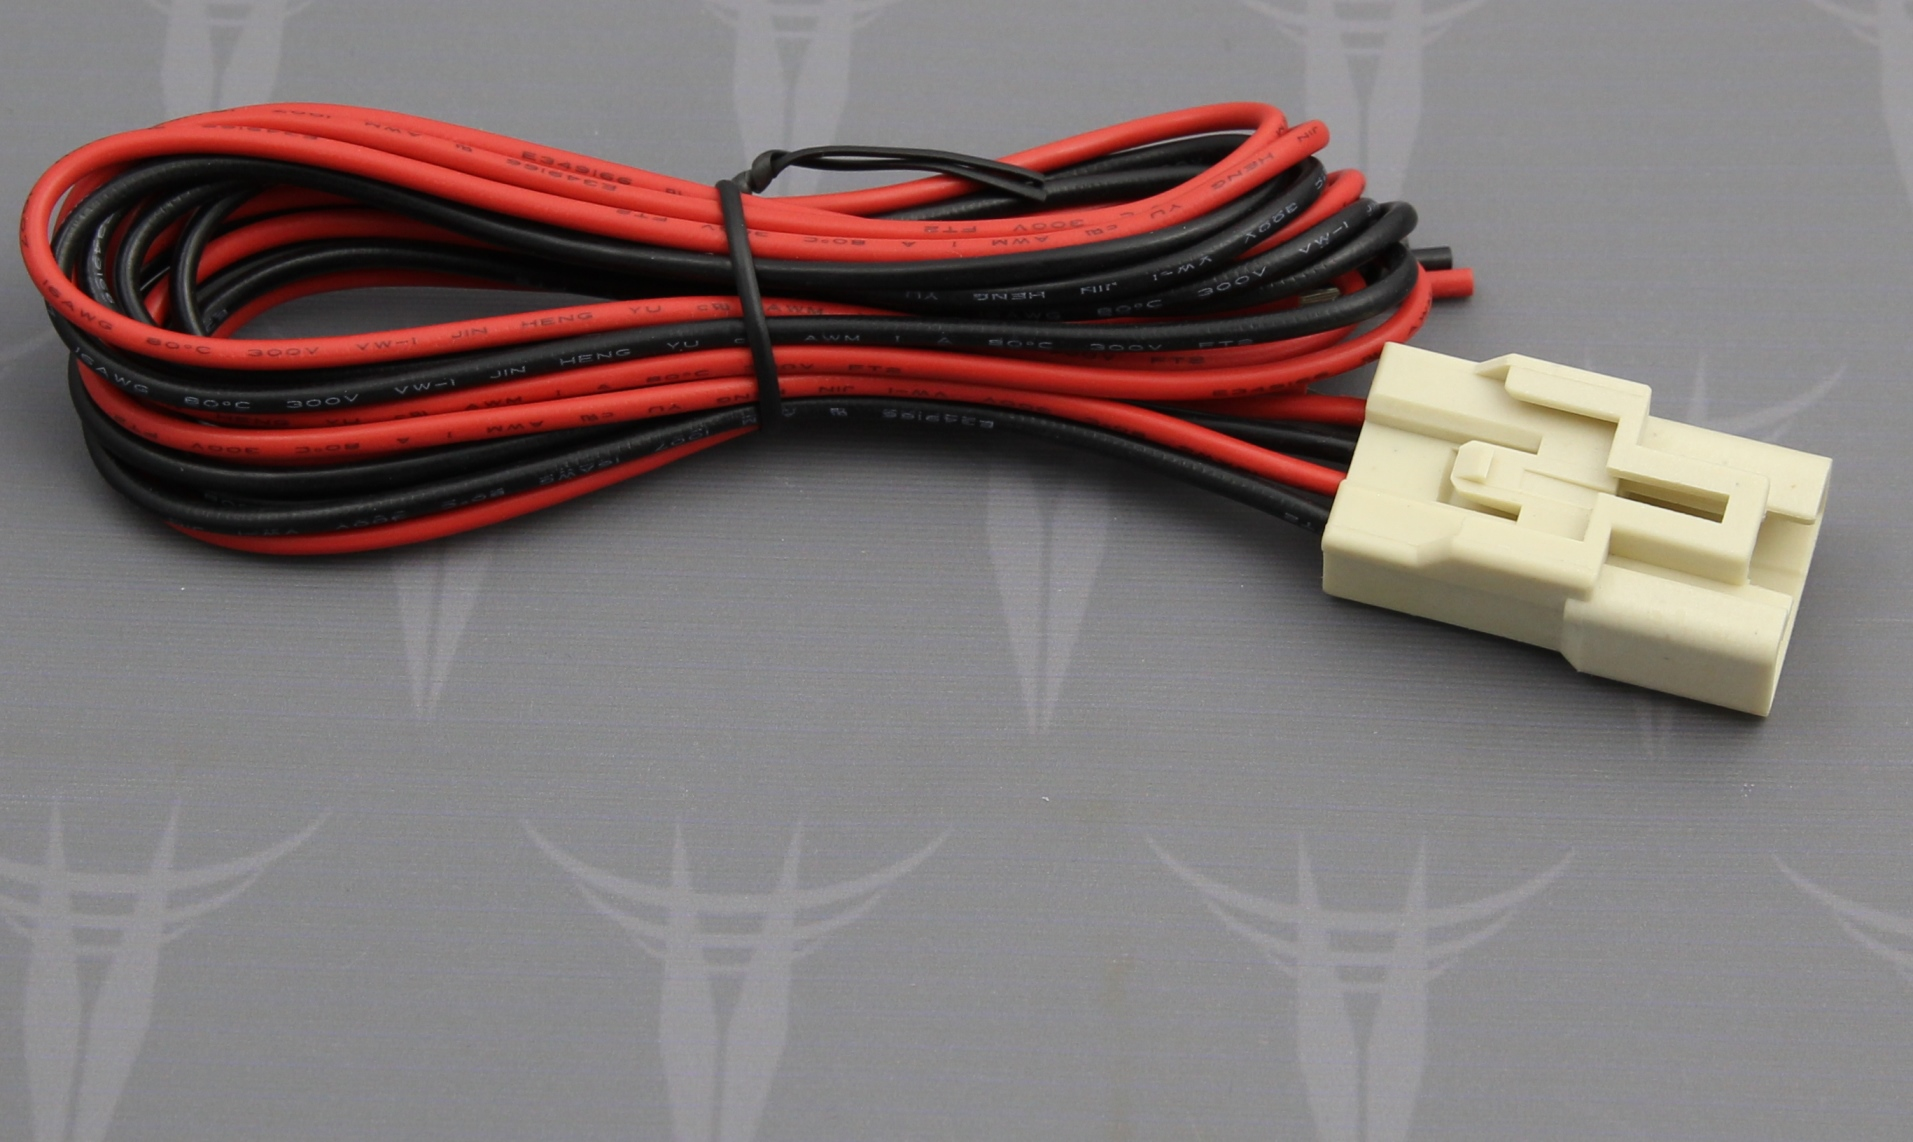 Wire Harness Toyota Highlander 2007 Wiring Diagram Will Be A Thing Tacoma 2005 2015 Tweeter Adapters 2006 Limited